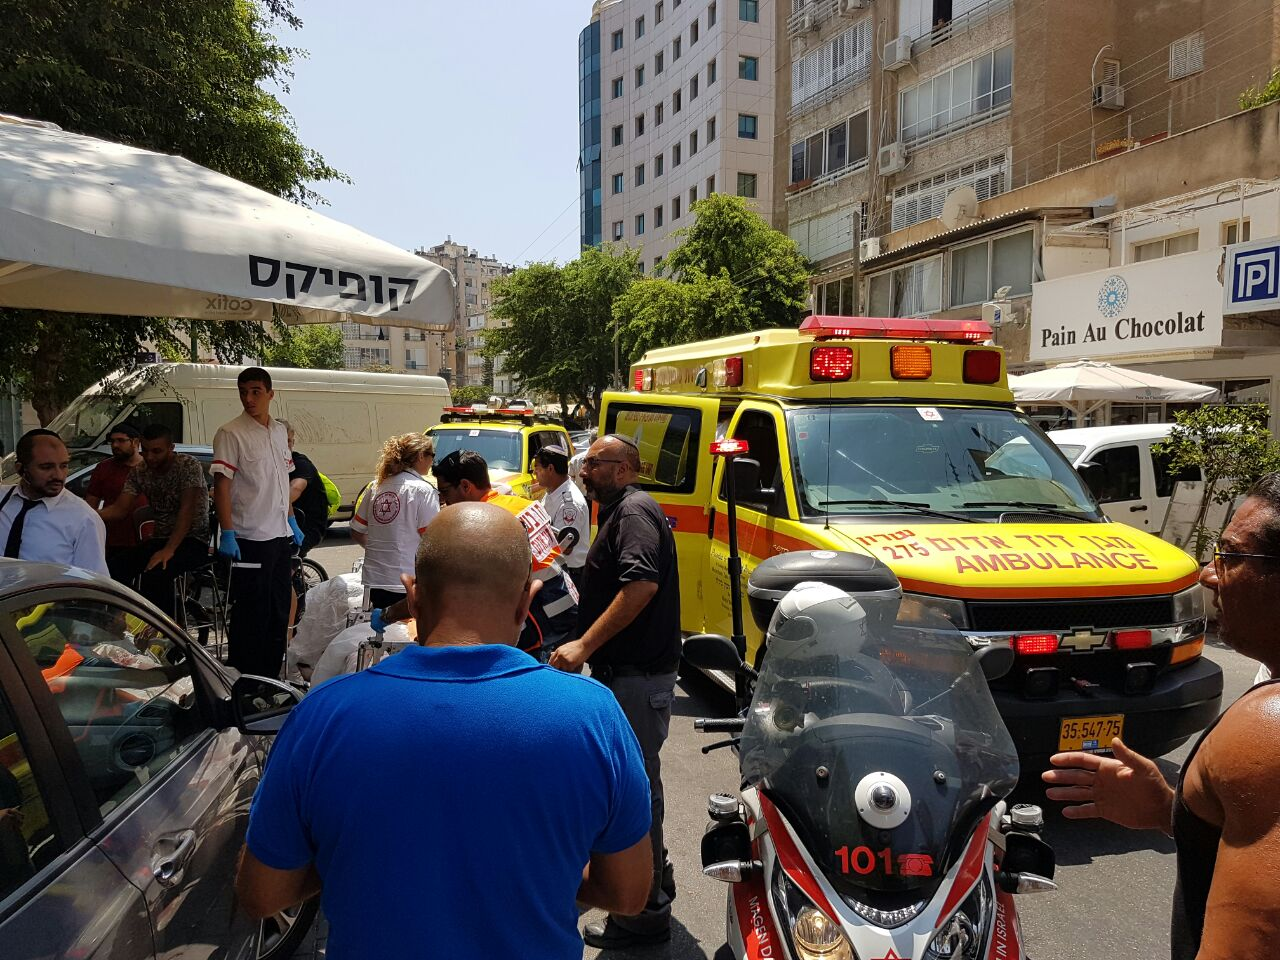 Netanya: woman loses control of her car and crashes into café